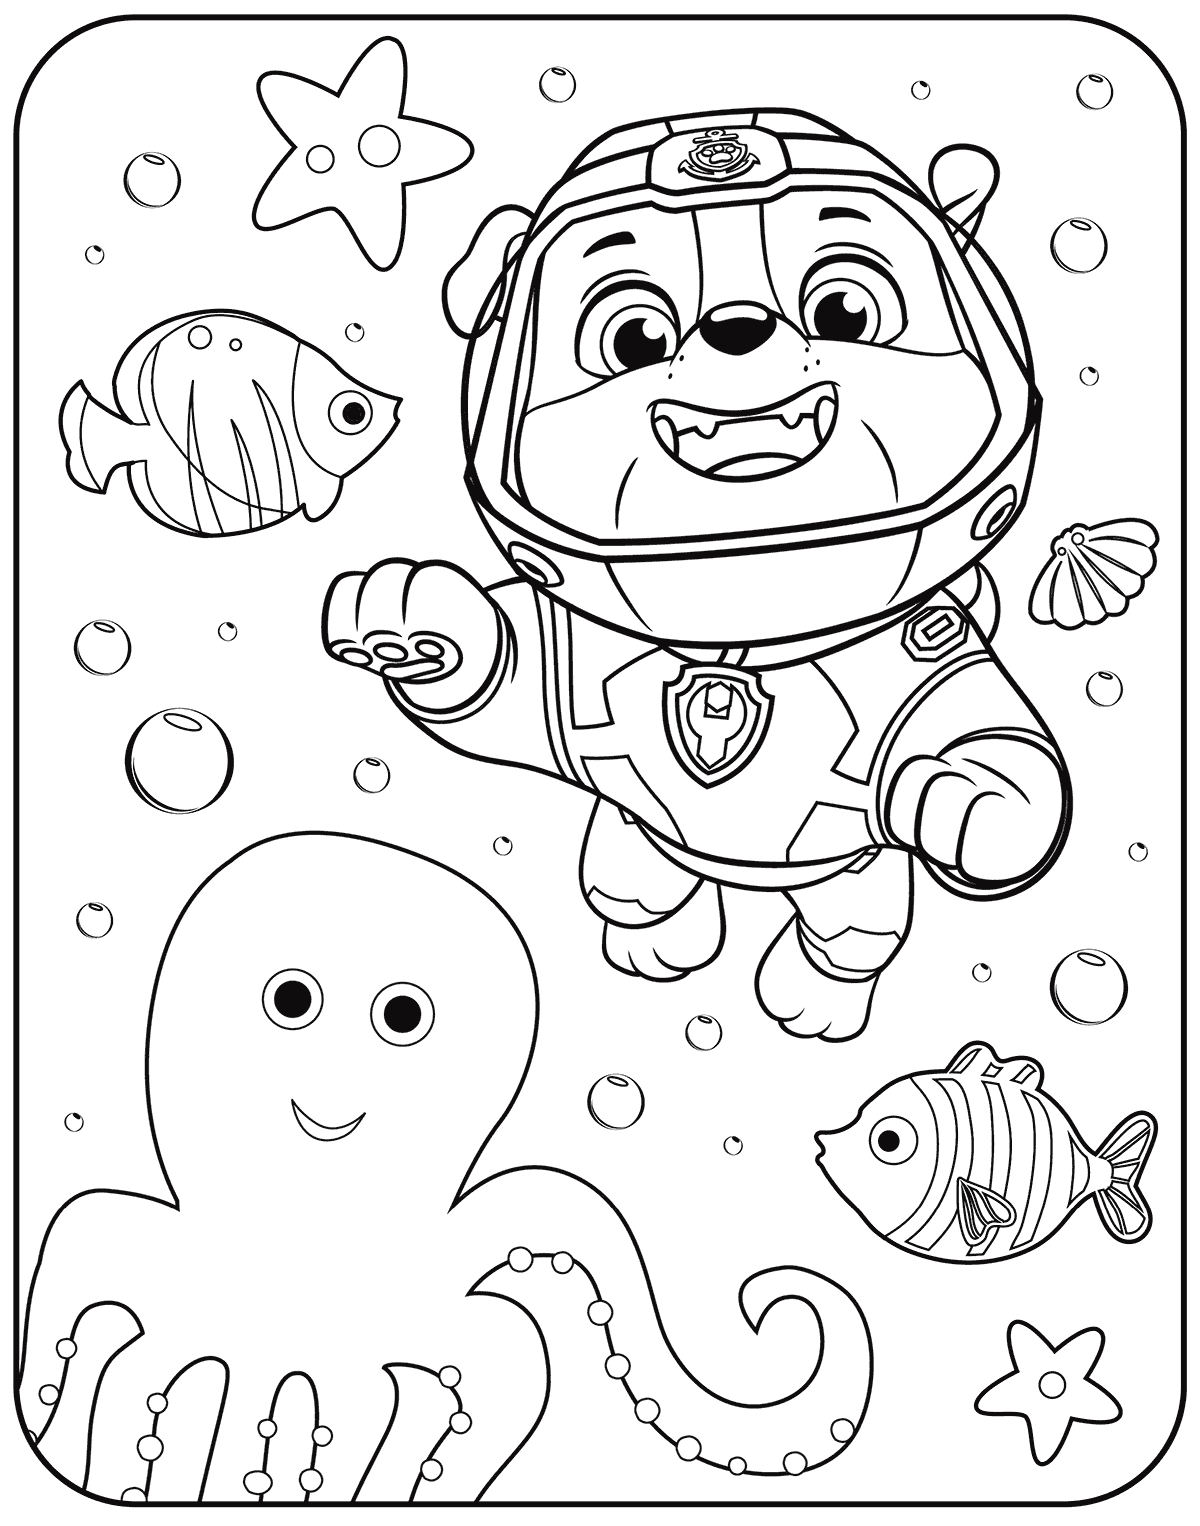 Marshall Paw Patrol Coloring Page At Getcolorings